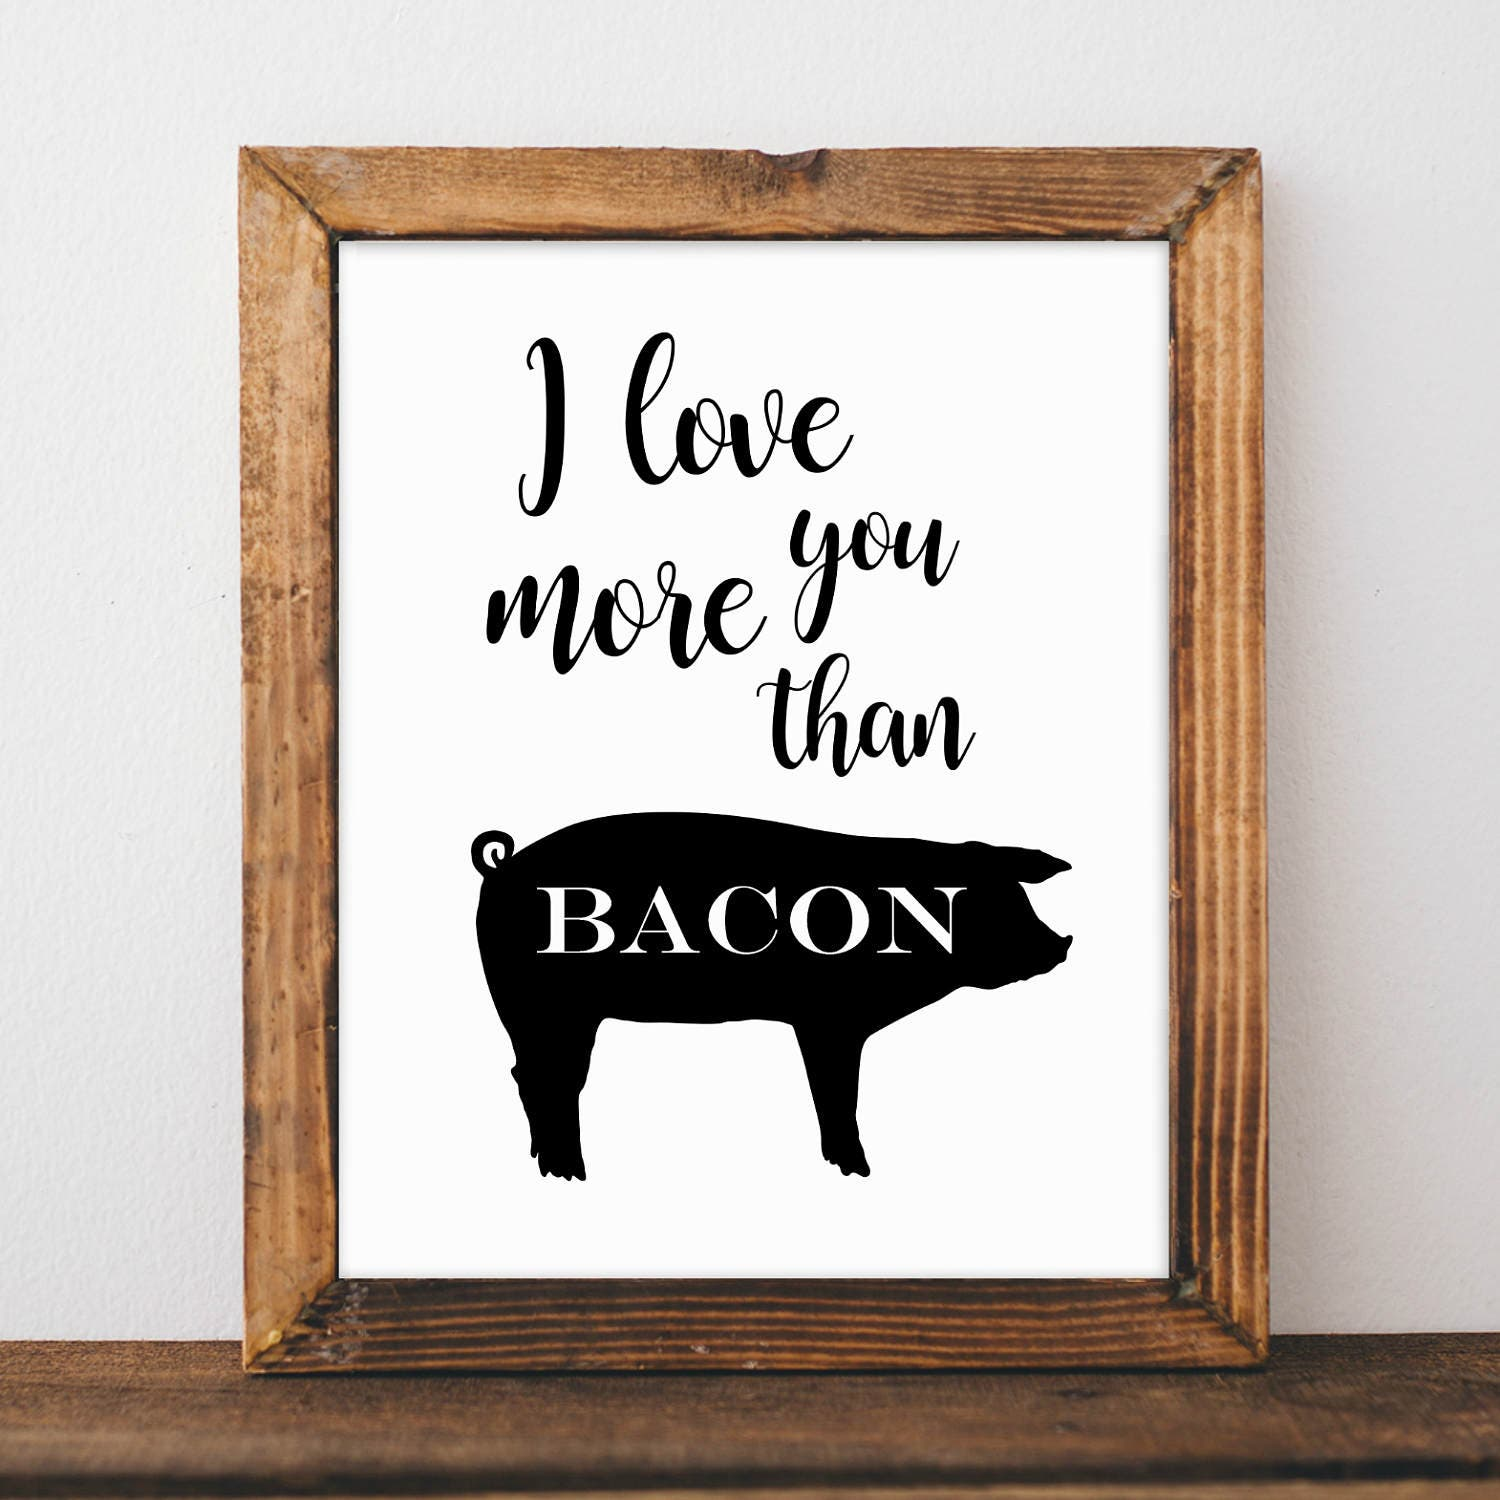 50 Farmhouse Style Gift Ideas From Etsy: I Love You More Than Bacon Kitchen Print Farmhouse Décor